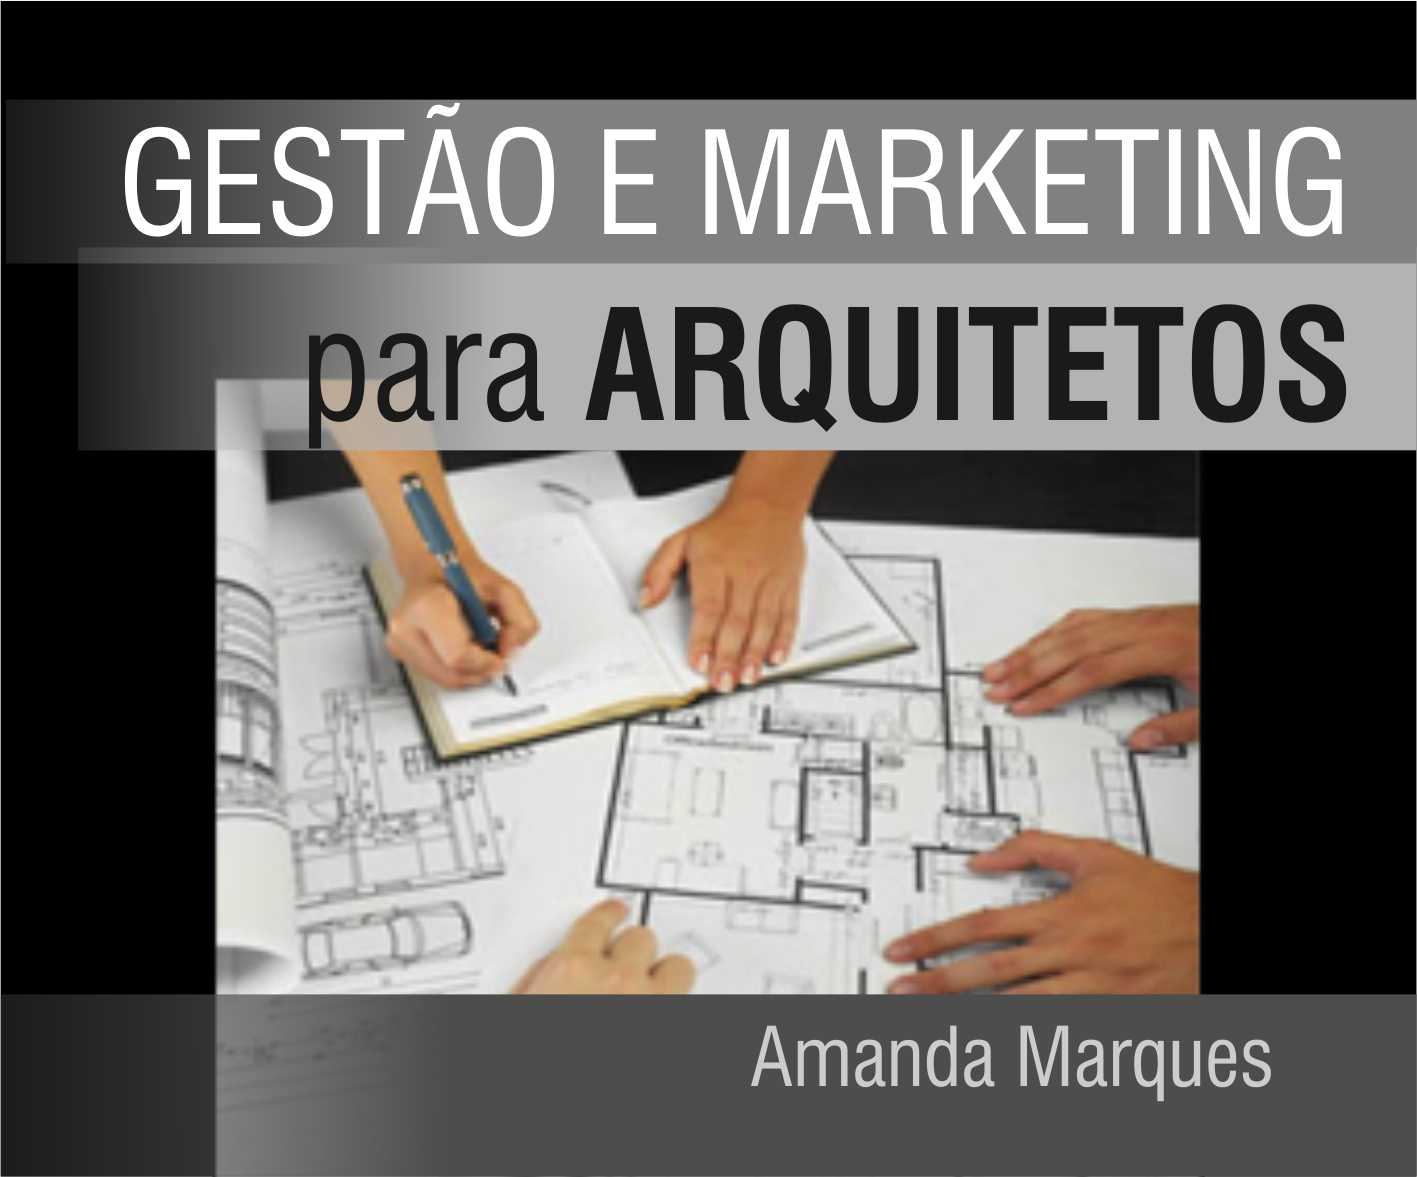 MARKETING PARA ARQUITETOS